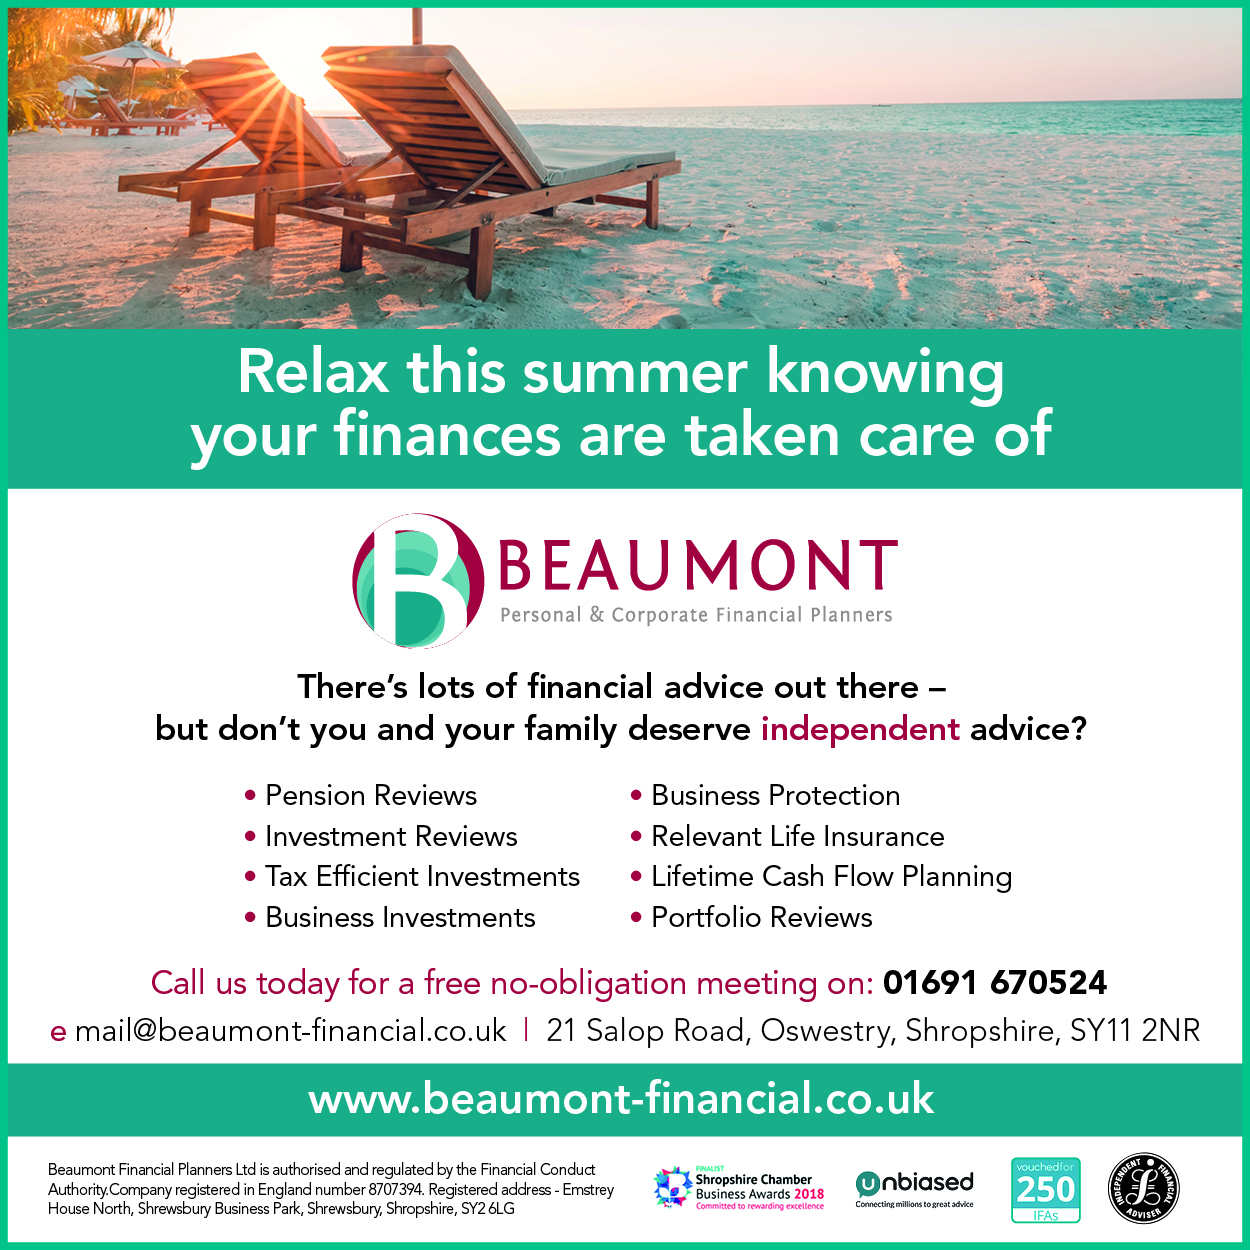 http:///www.beaumont-financial.co.uk